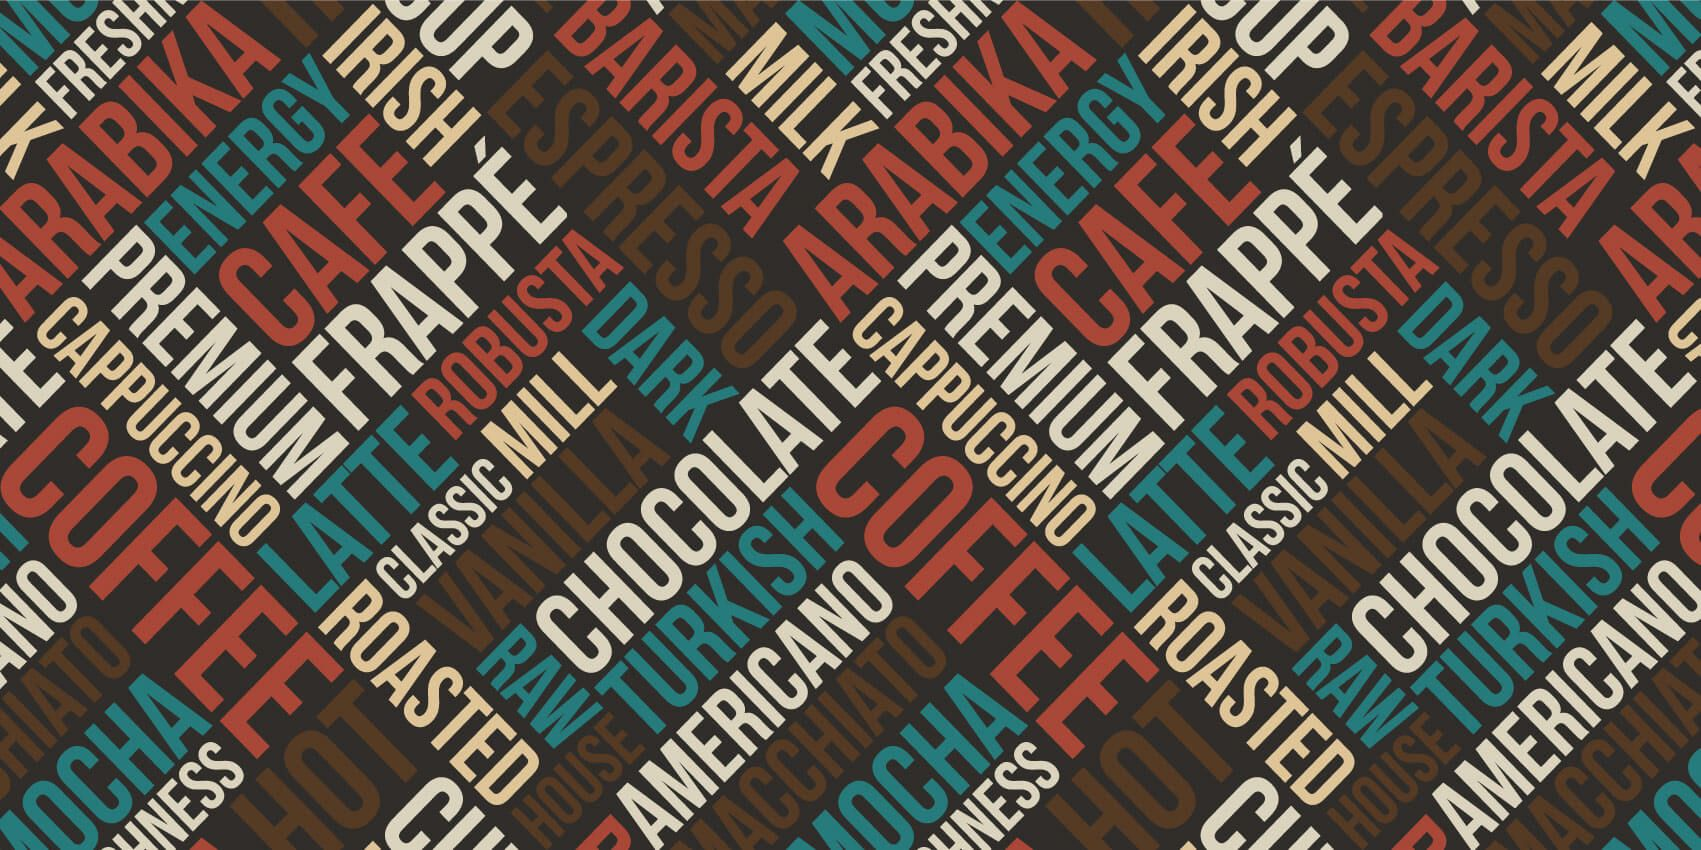 Other - Coffee and chocolate text - Kitchen